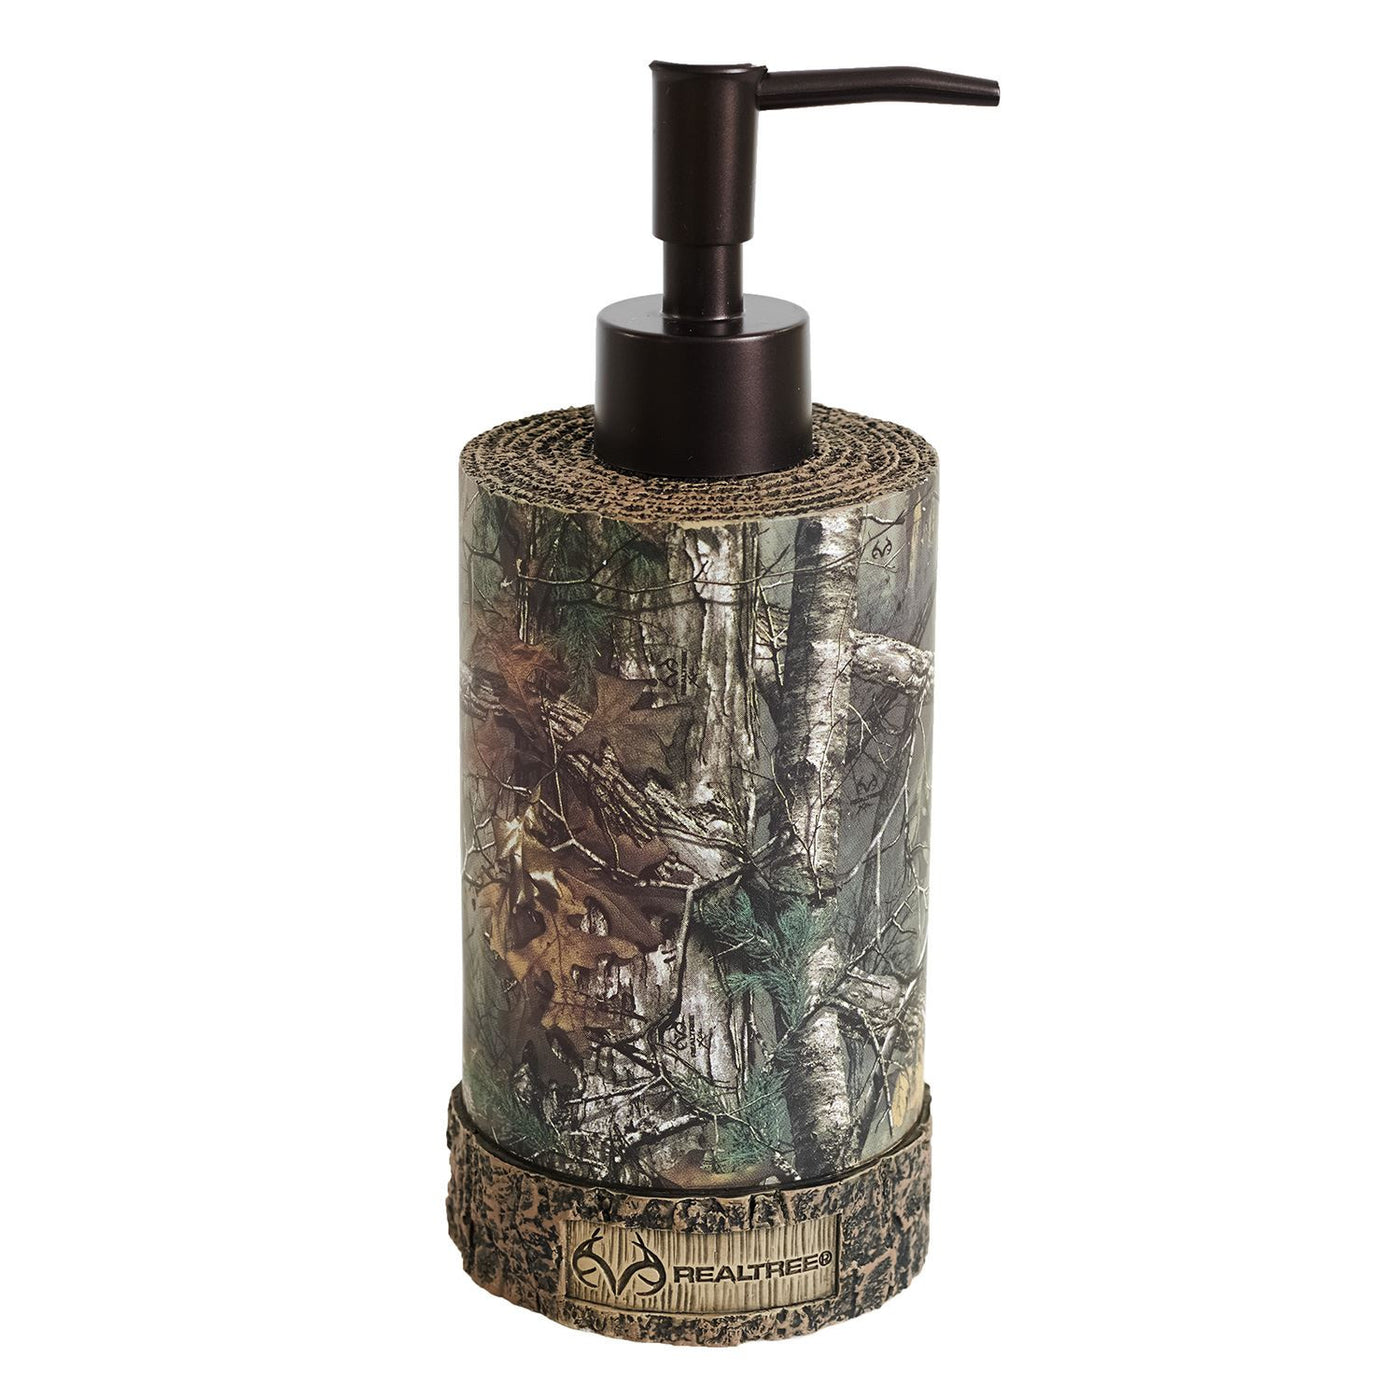 Cabin Decor | Realtree Xtra Soap Pump – The Cabin Shack